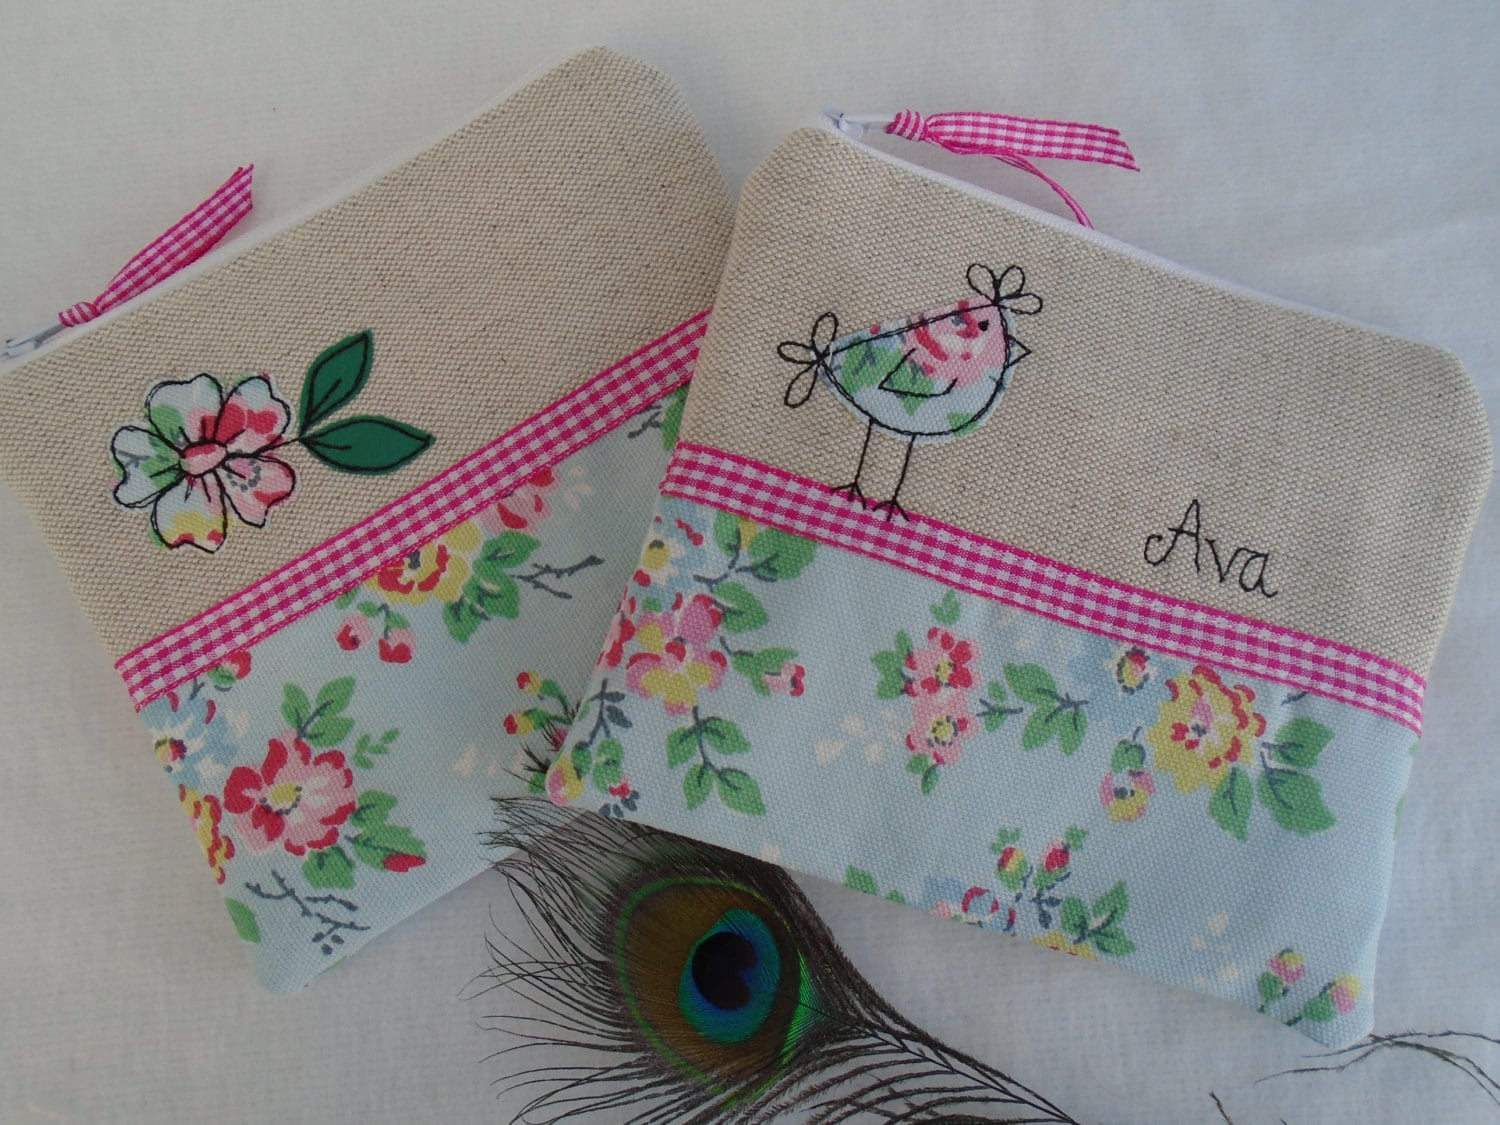 Handmade Cosmetic Makeup Bag or Large Purse with option to personalise Choice of Hen or Flower Applique Cath Kidston Blue Floral fabric